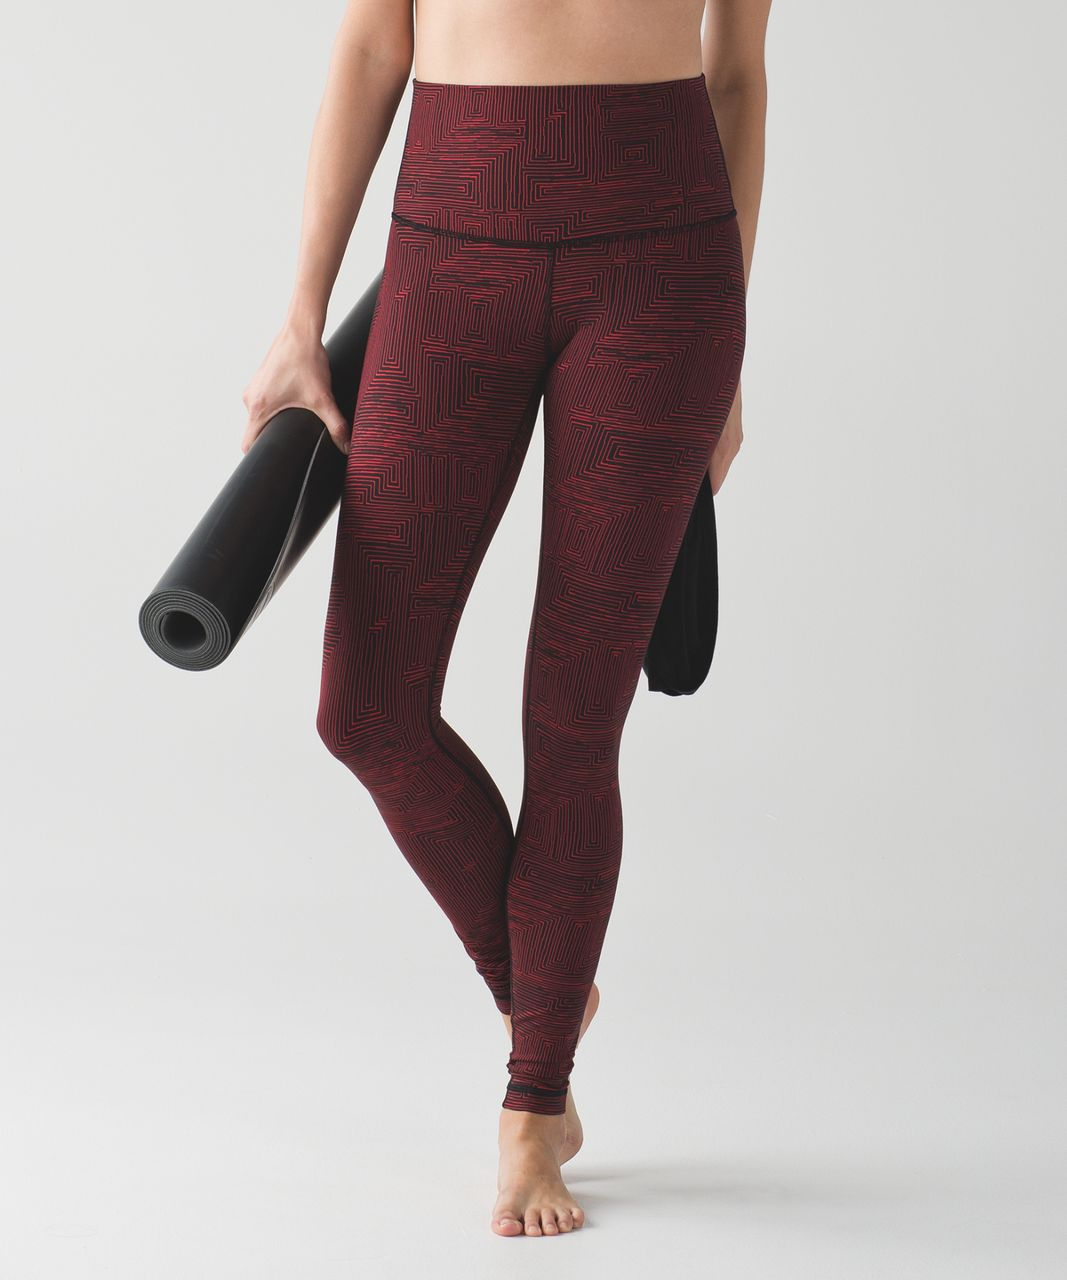 Lululemon Wunder Under Pant (Hi-Rise) - Maze True Red Black